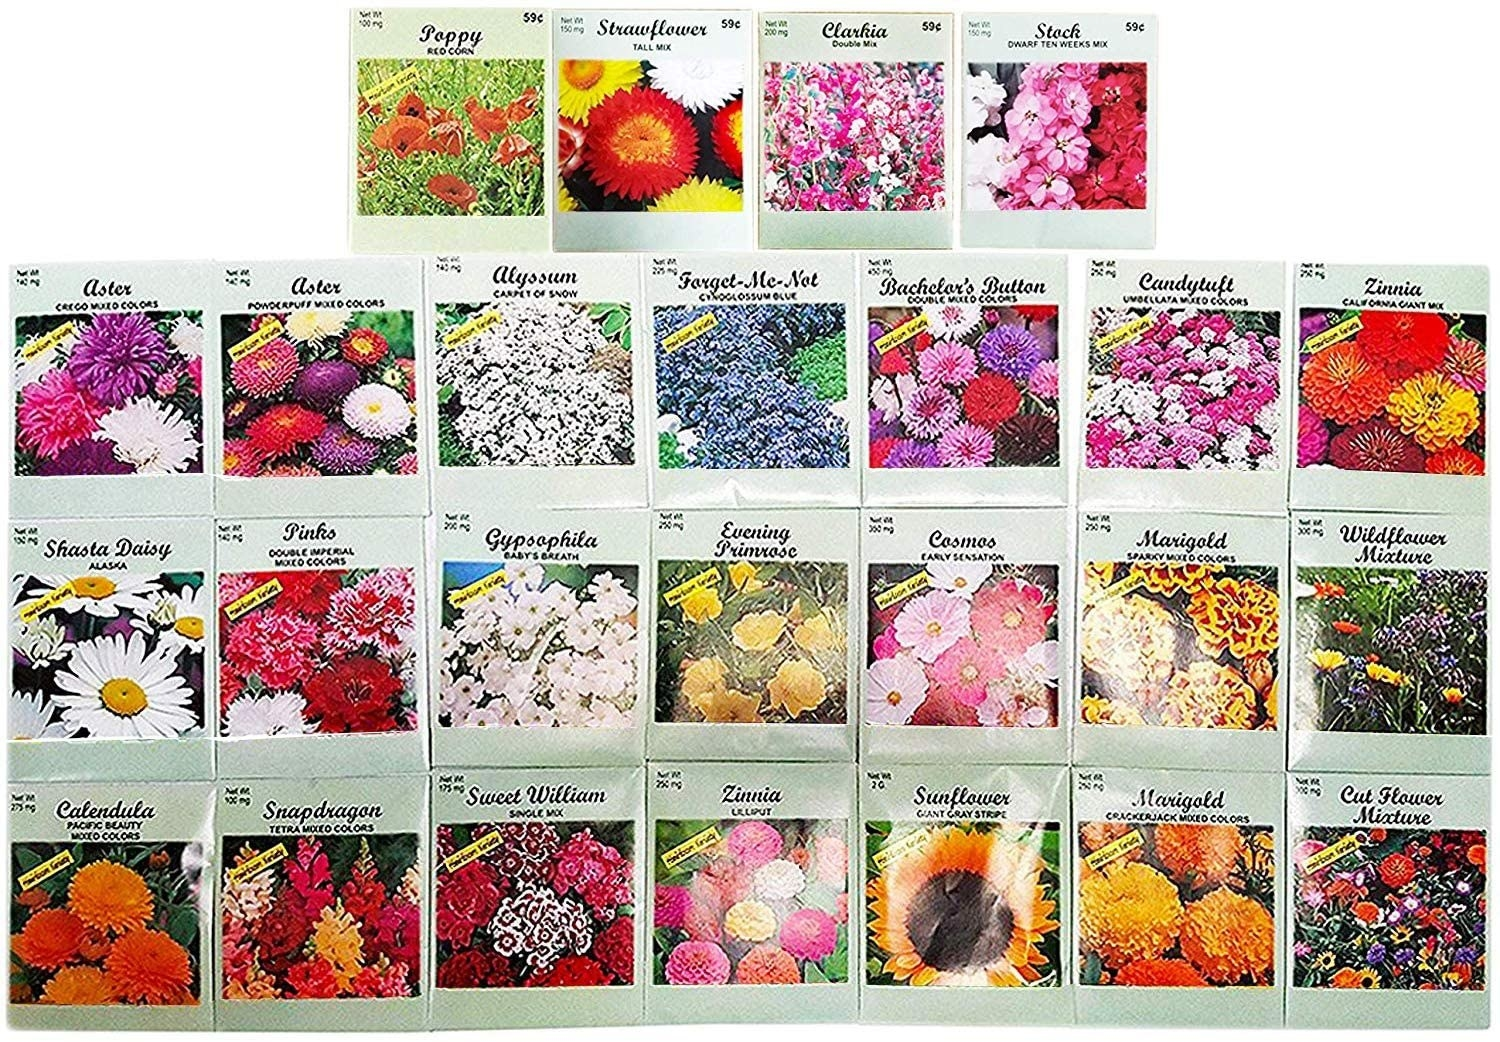 Twenty-five assorted packets of flower seeds